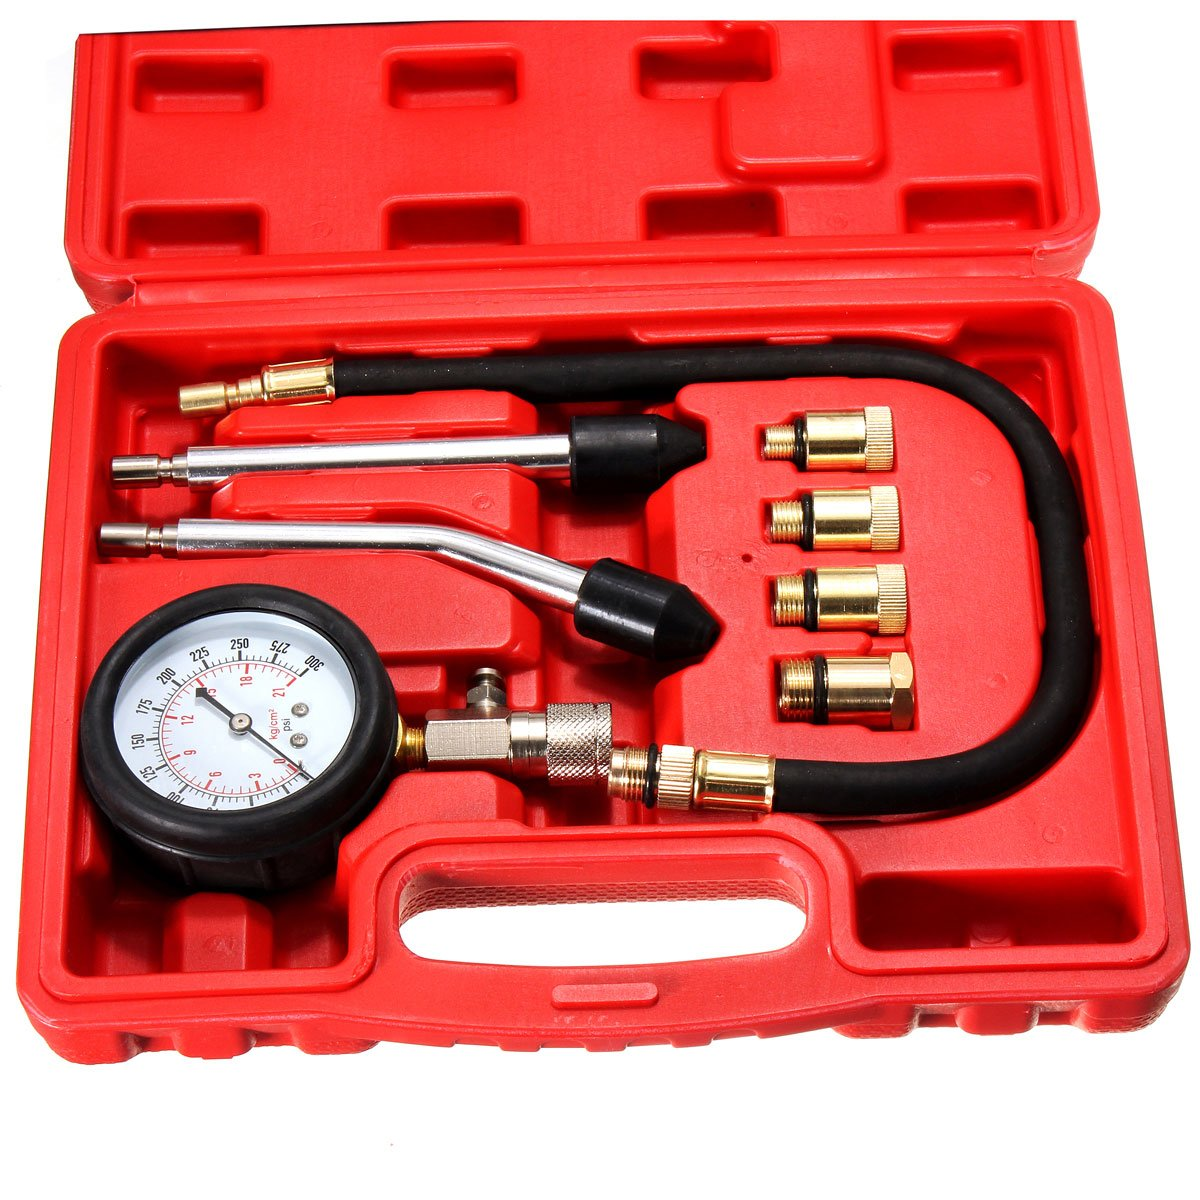 Winnerbe Automotive Petrol Engine Compression Tester Test Kit Gauge Car Motorcycle Tool by Winnerbe (Image #2)